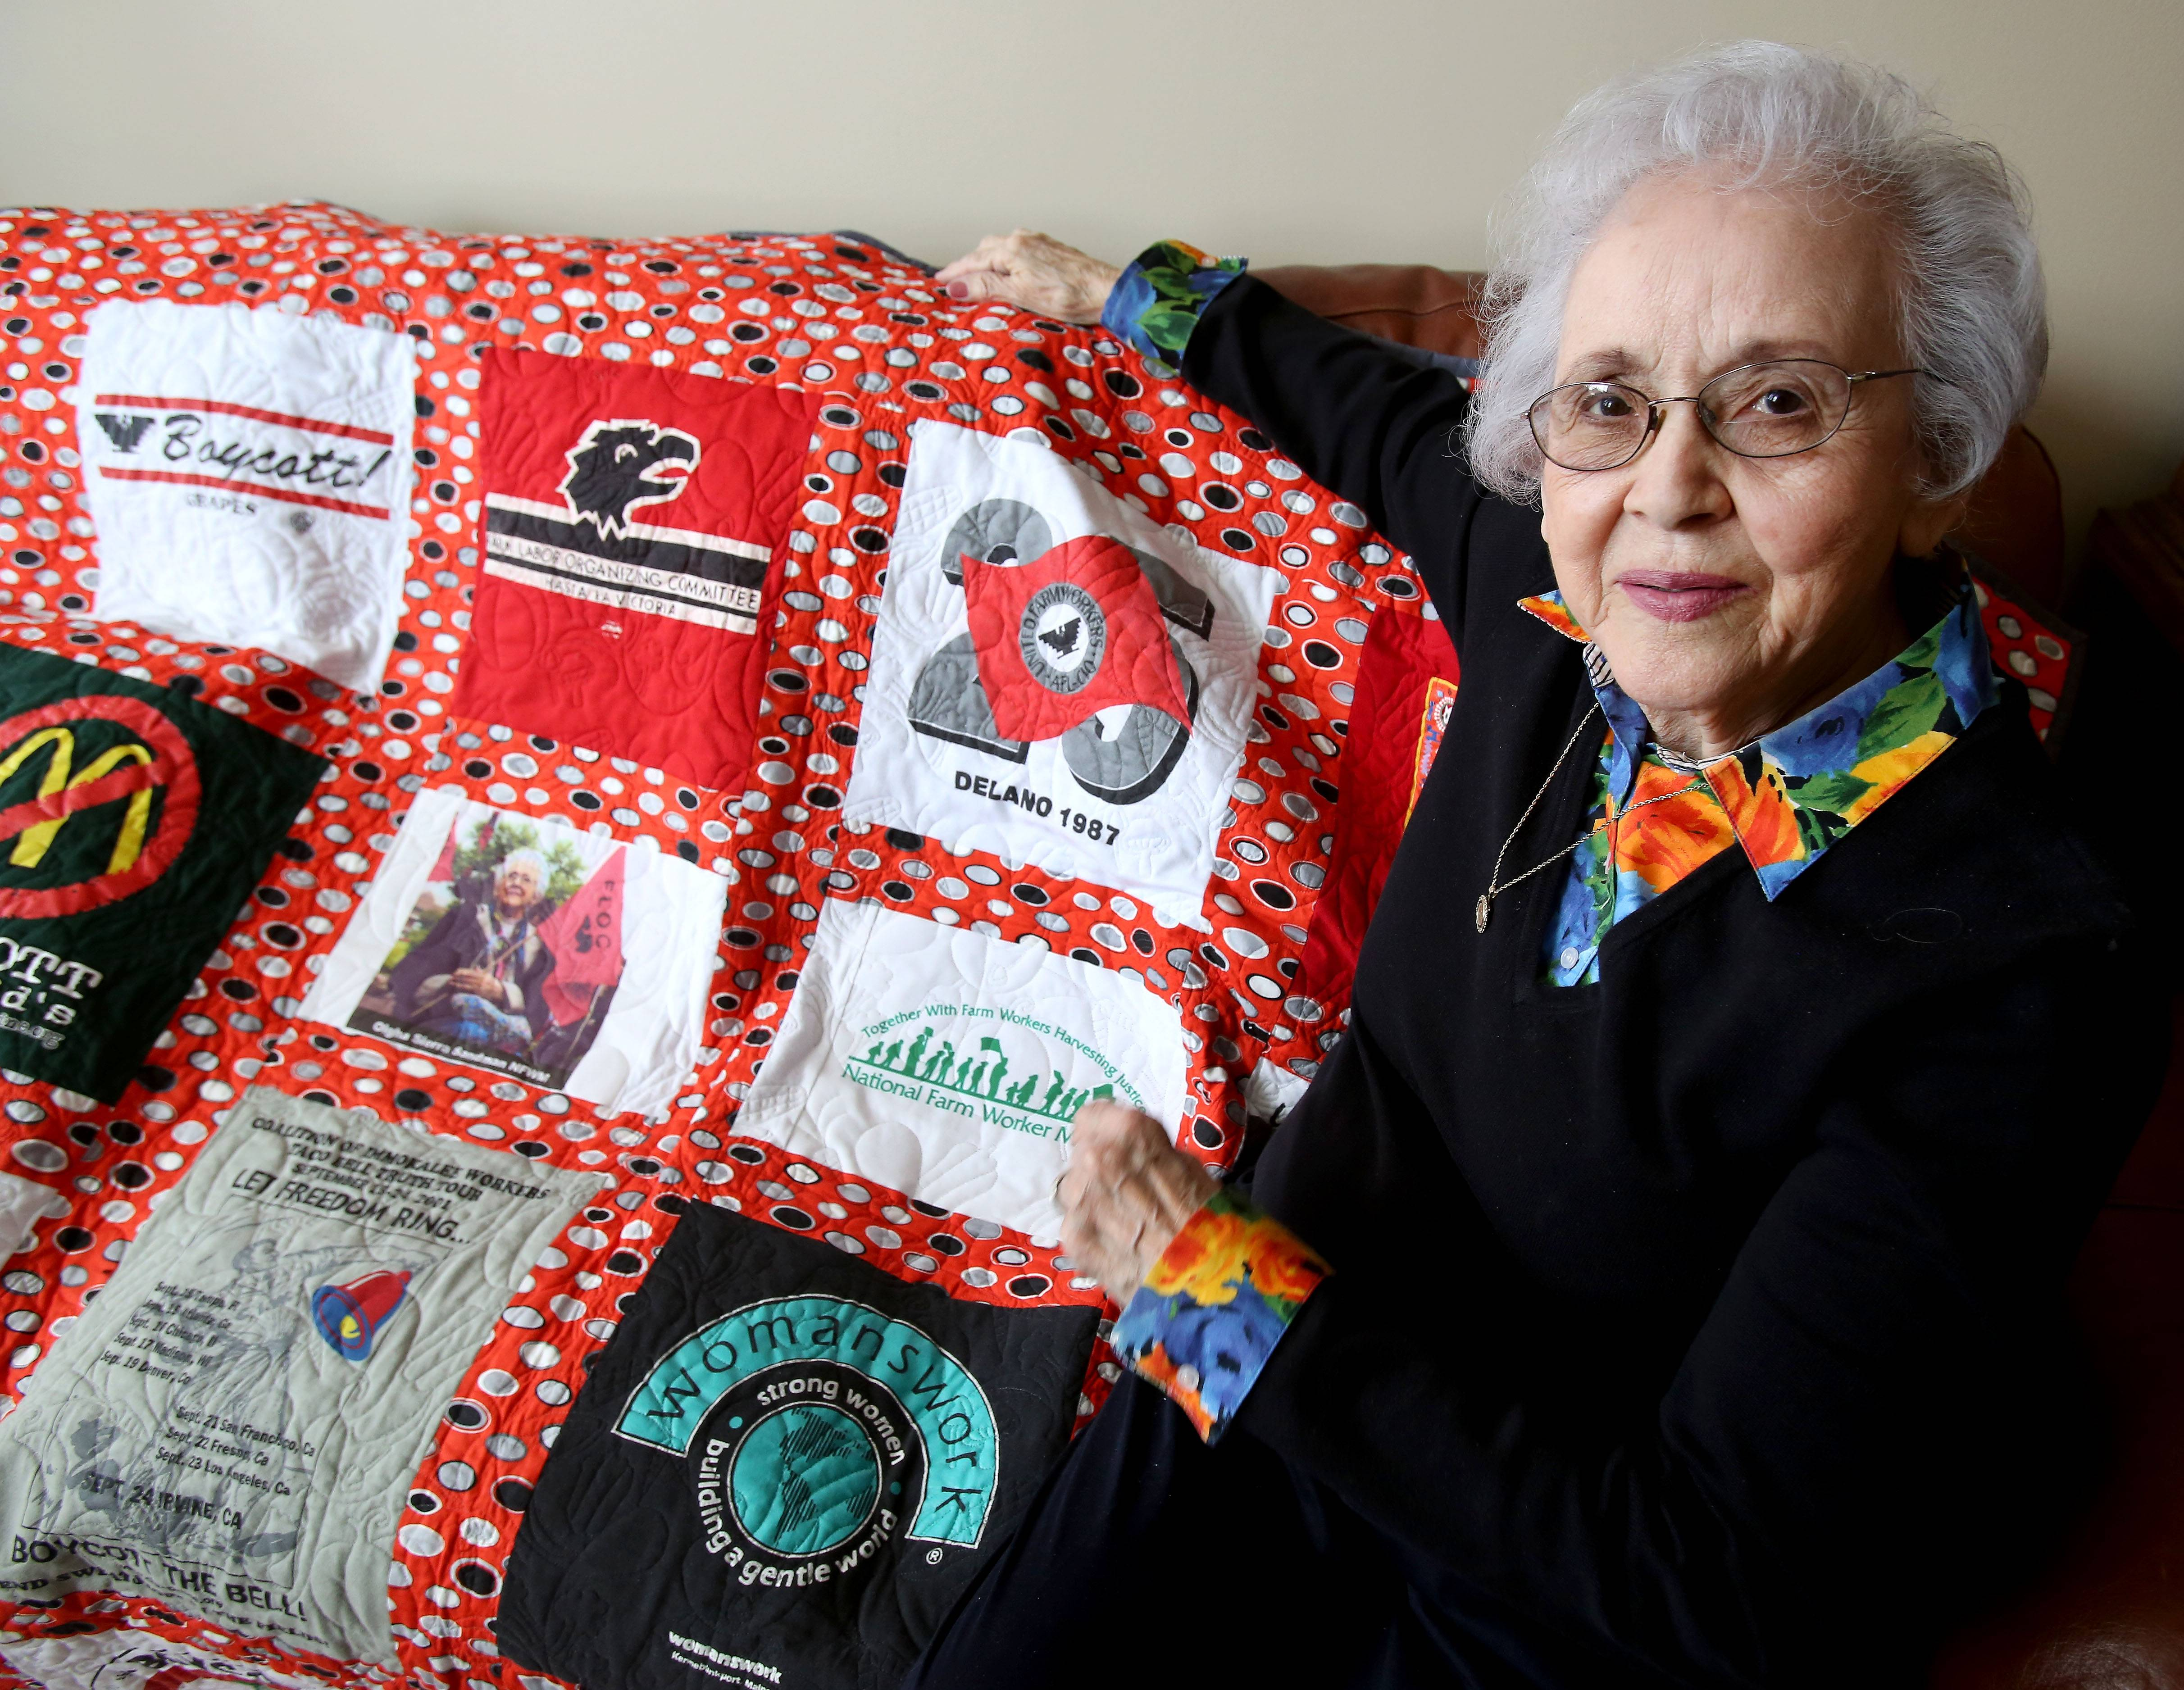 Olgha Sandman shows a quilt made of T-shirts she has relating to the migrant labor movement.